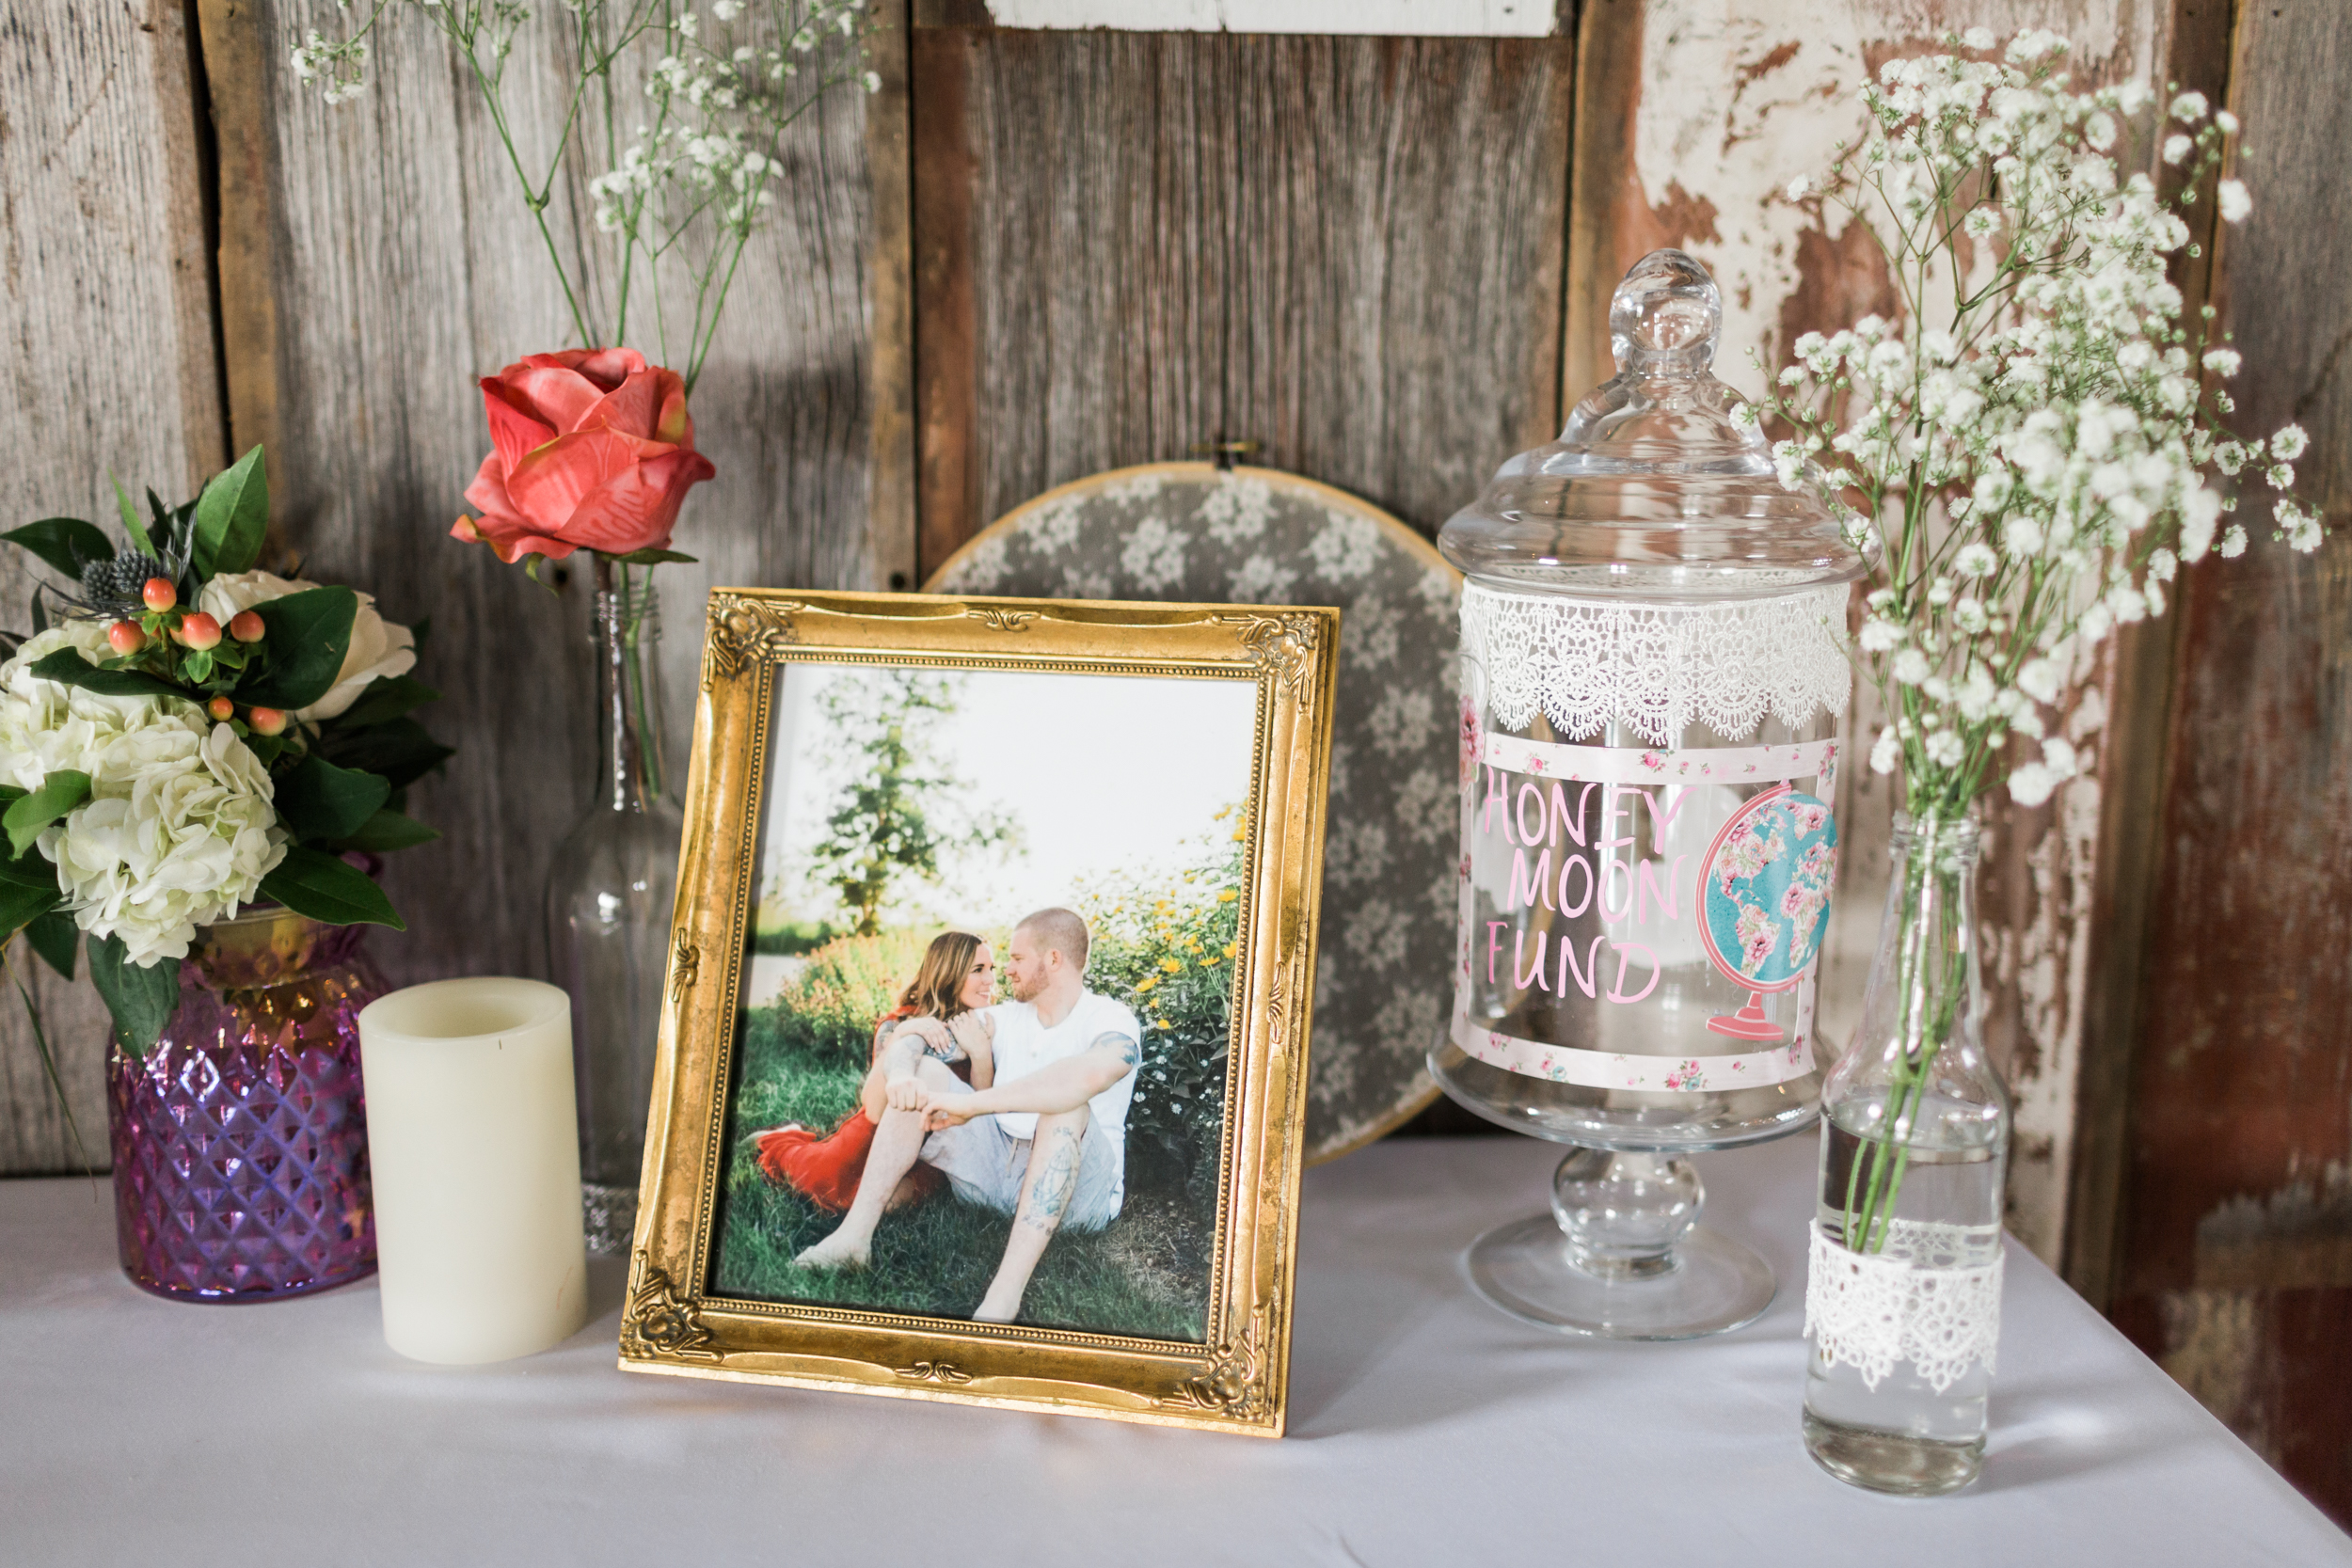 romanticbarnwedding-22.jpg